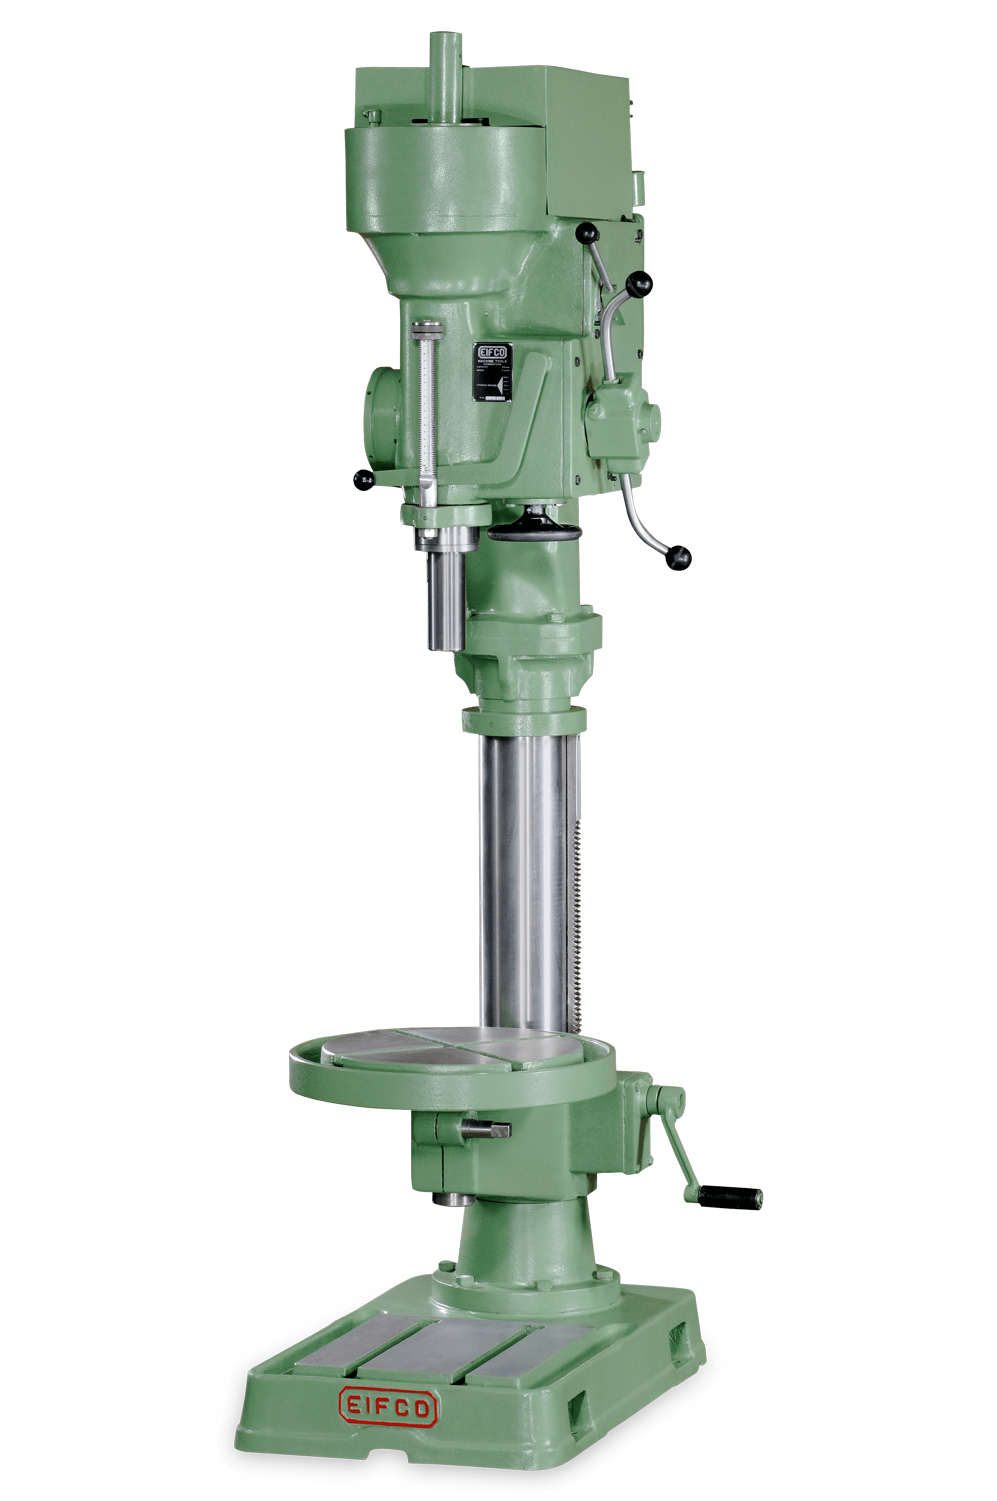 Eifco -Pillar Drilling Machine (Heavy Duty) - Auto Feed 38mm